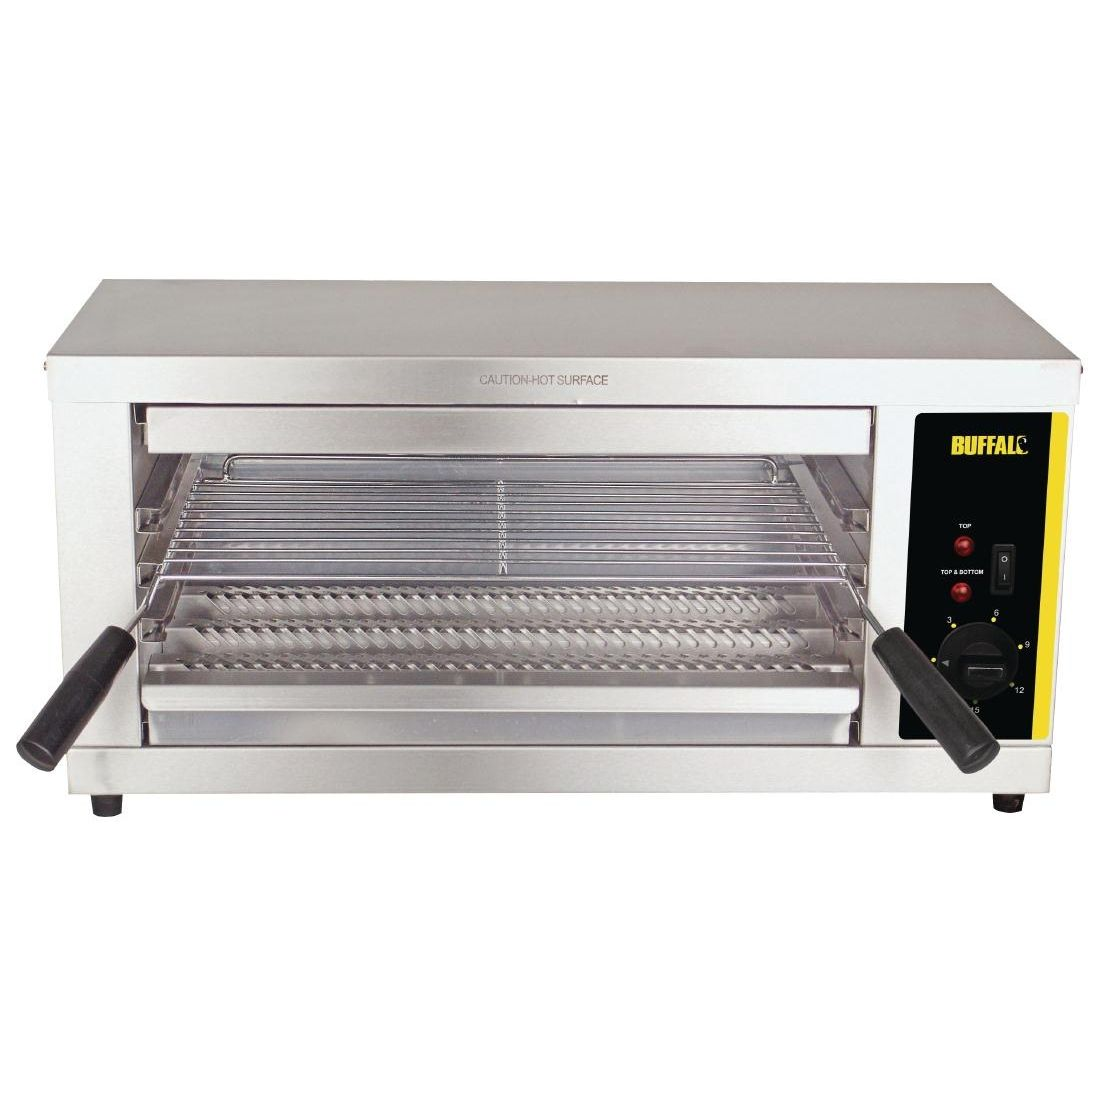 Buffalo Quartz Salamander Grill Stainless Steel Countertops